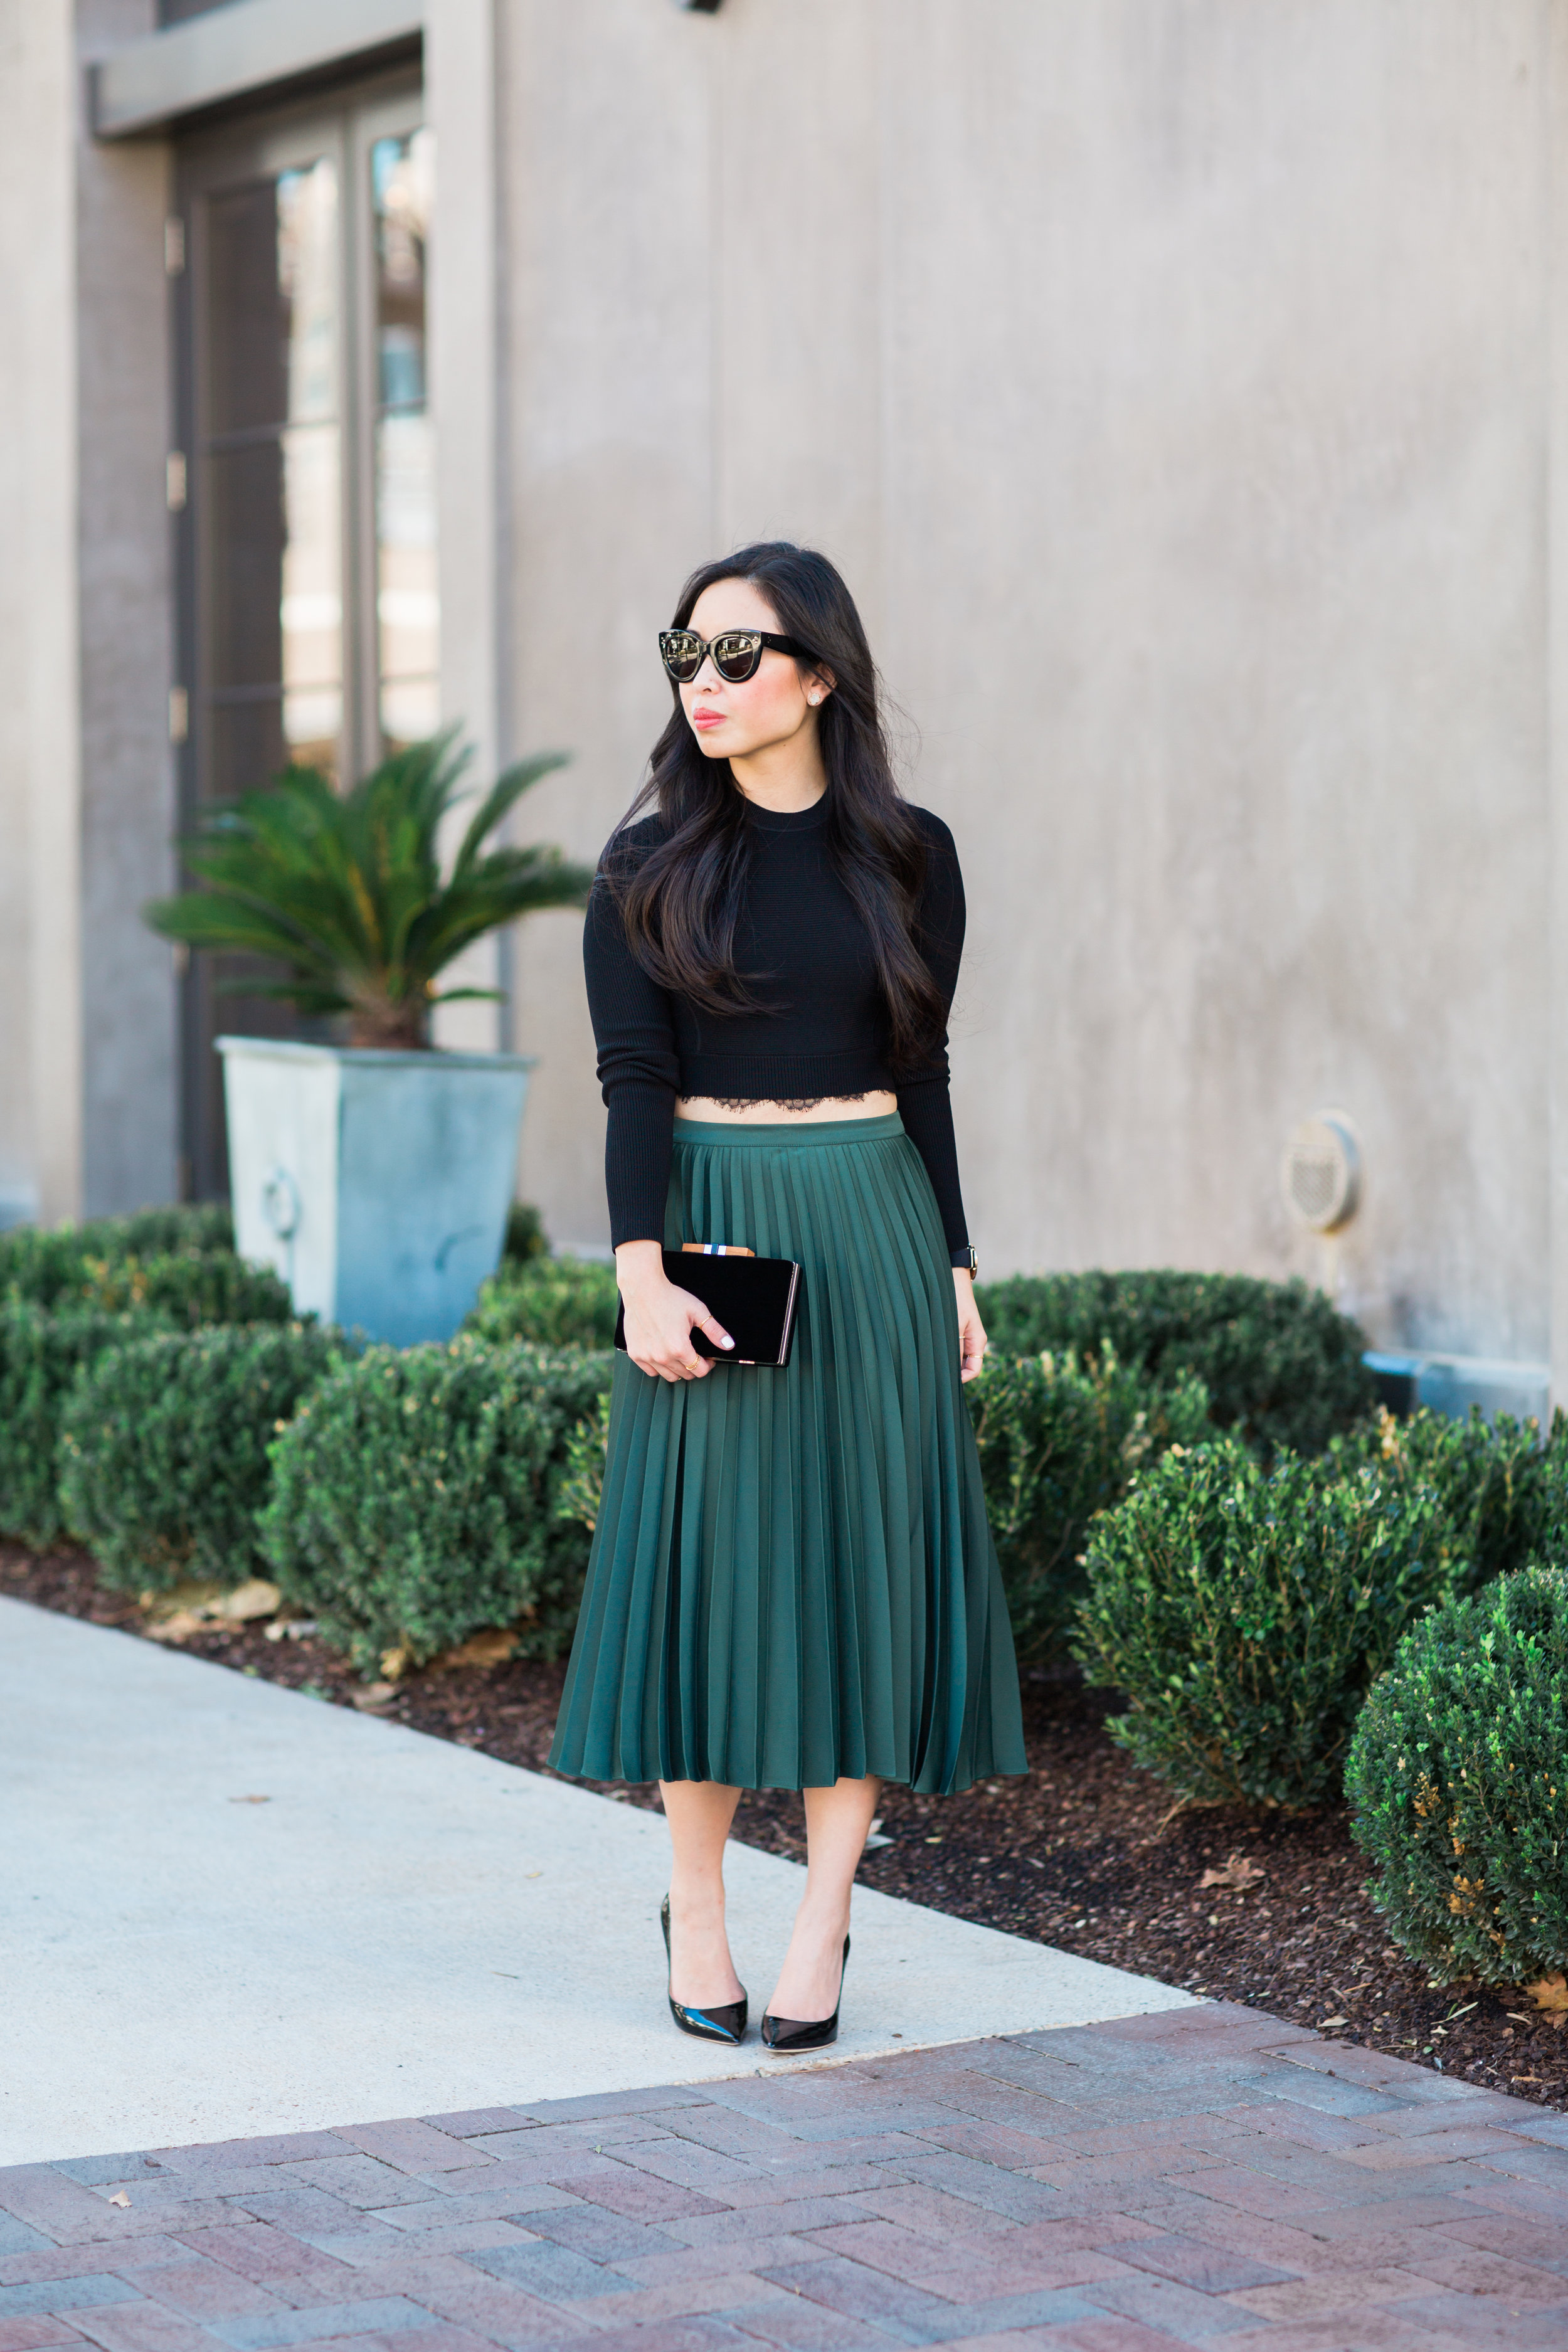 the-green-satin-pleated-midi-skirt-jannadoan.com